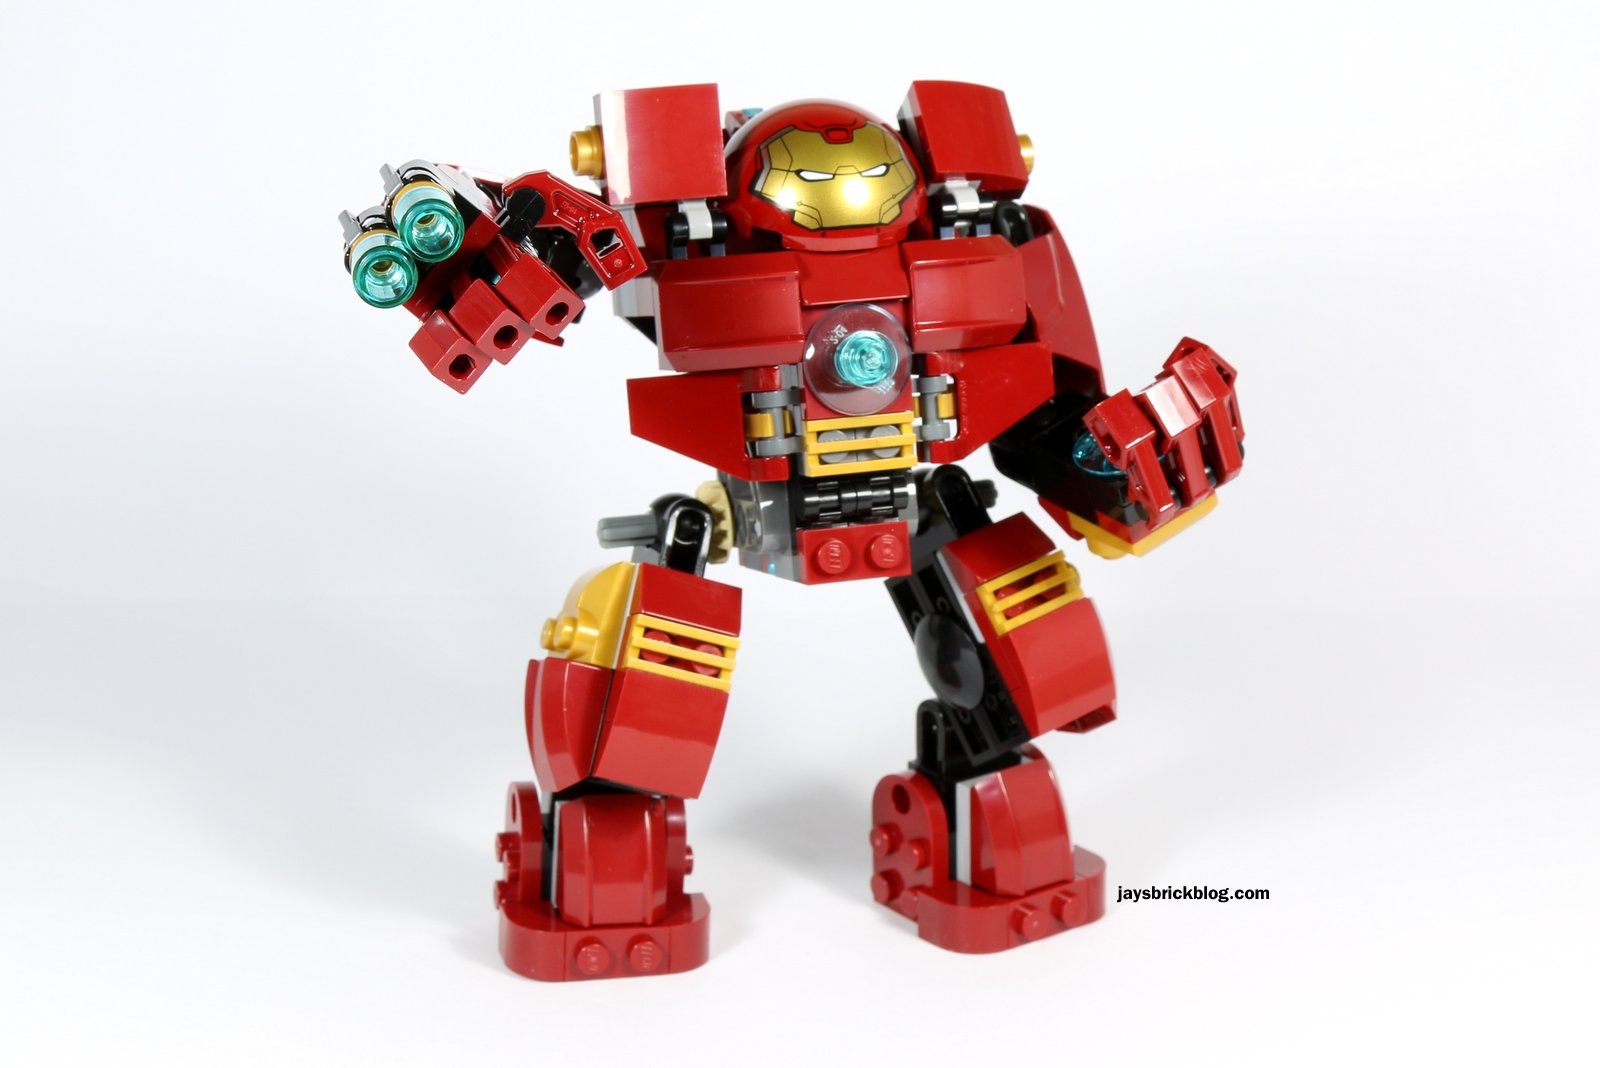 Review: LEGO 76031 – The Hulk Buster Smash